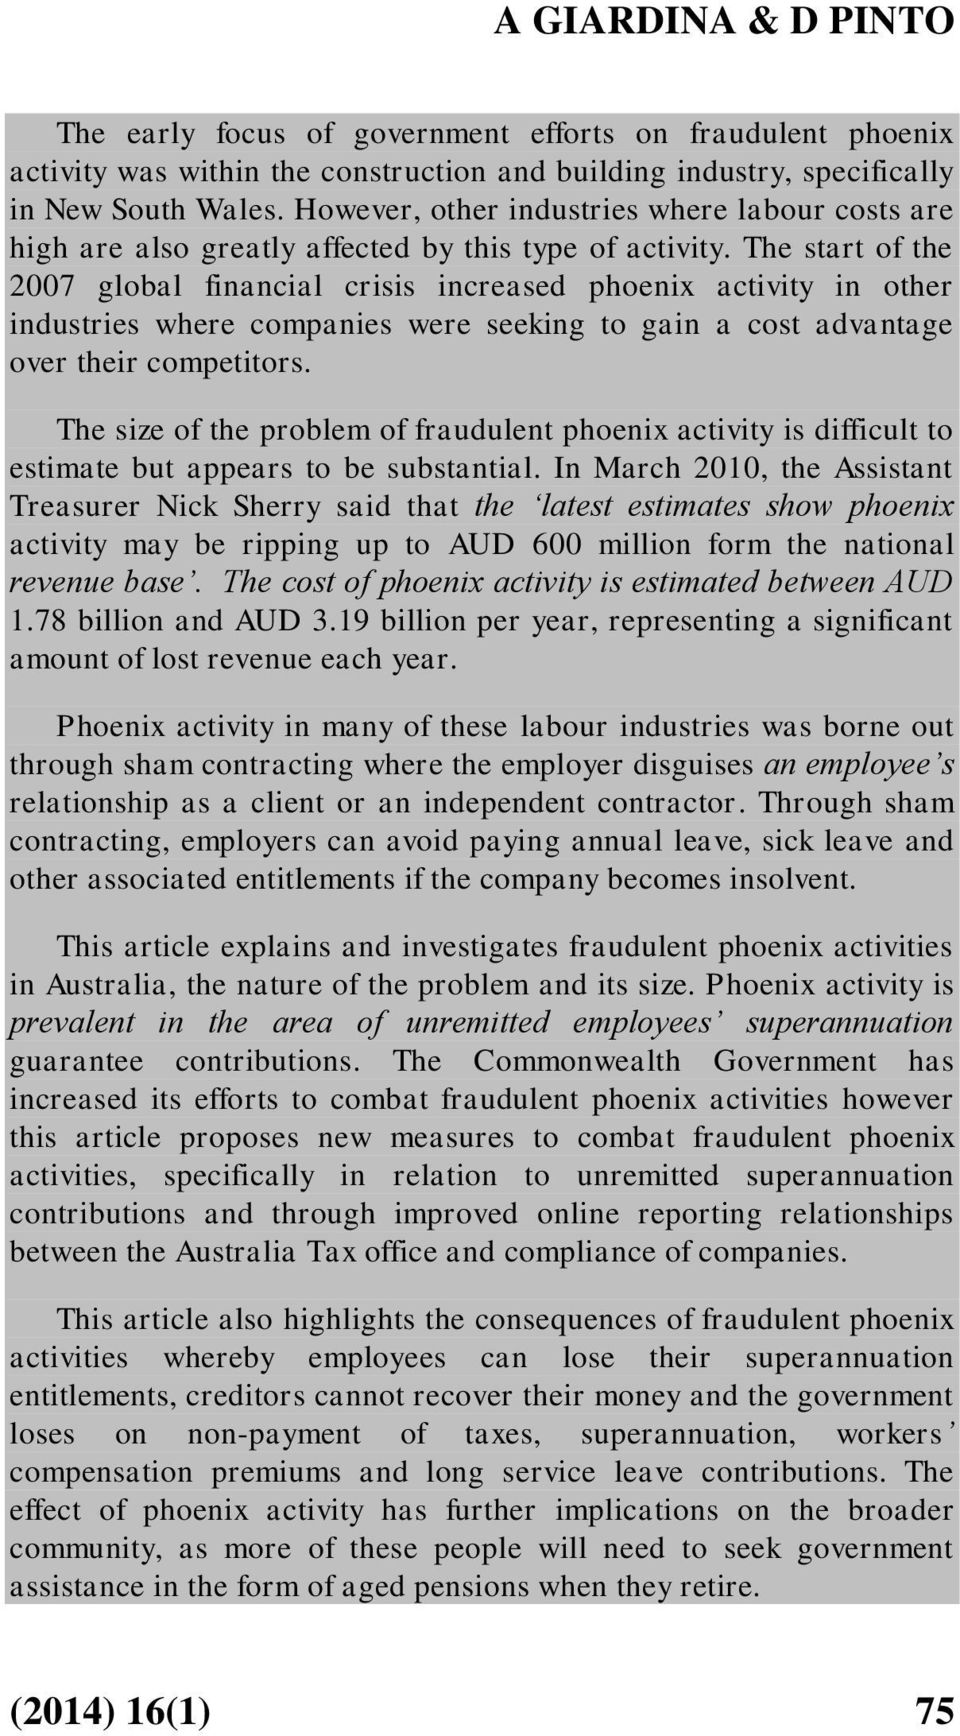 The start of the 2007 global financial crisis increased phoenix activity in other industries where companies were seeking to gain a cost advantage over their competitors.